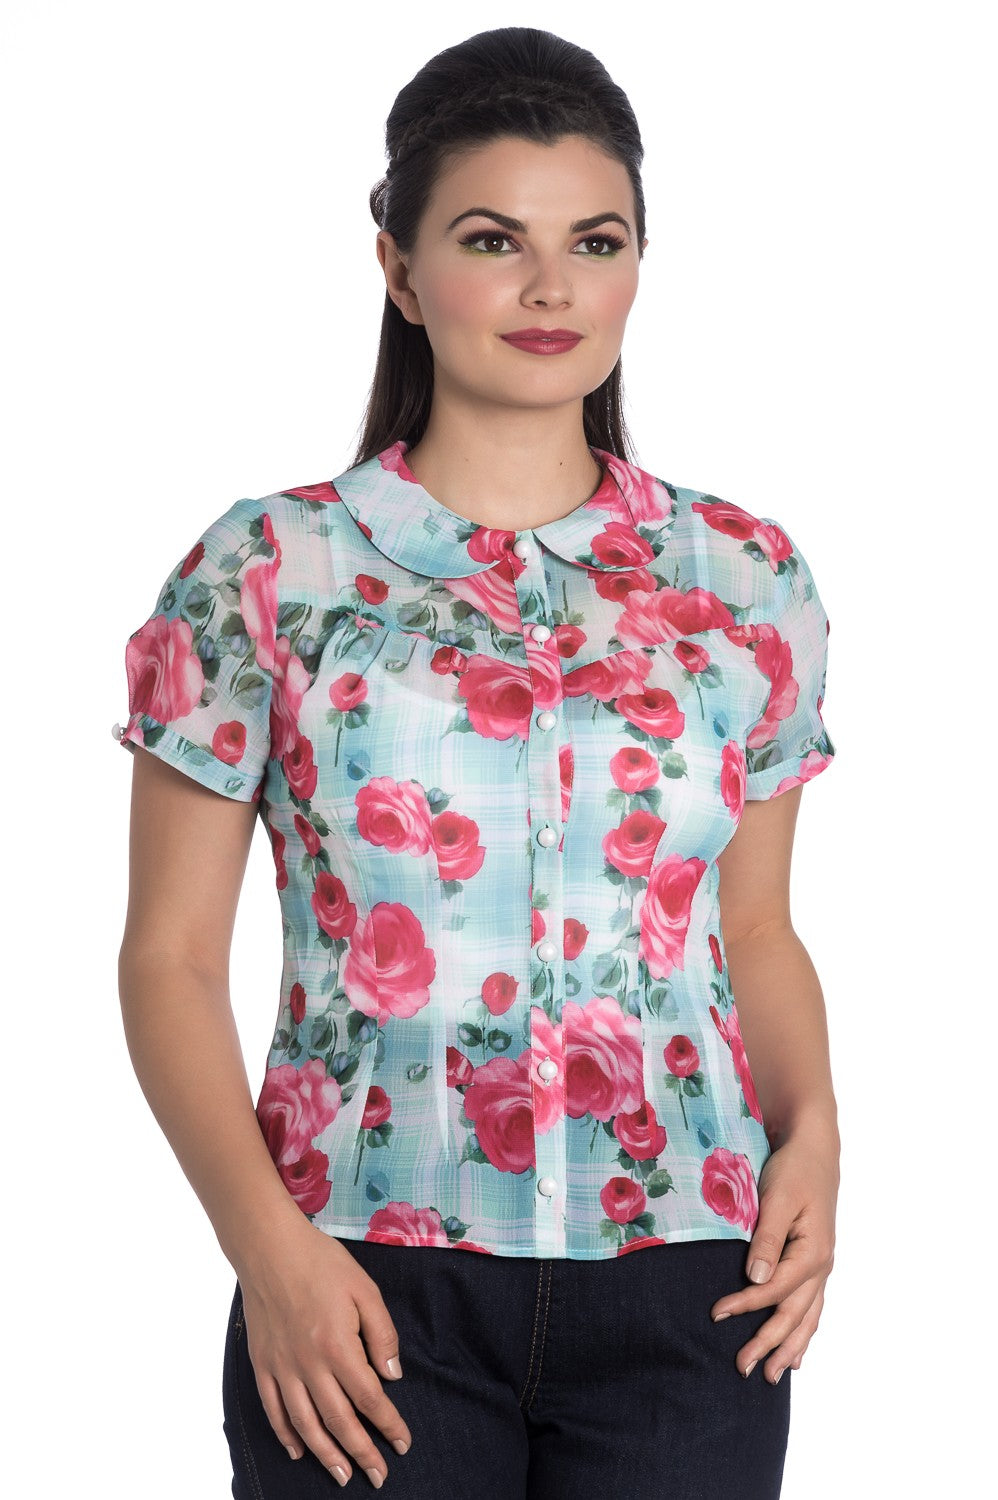 Floral  Chiffon Blouse SALE WAS £25 NOW £15